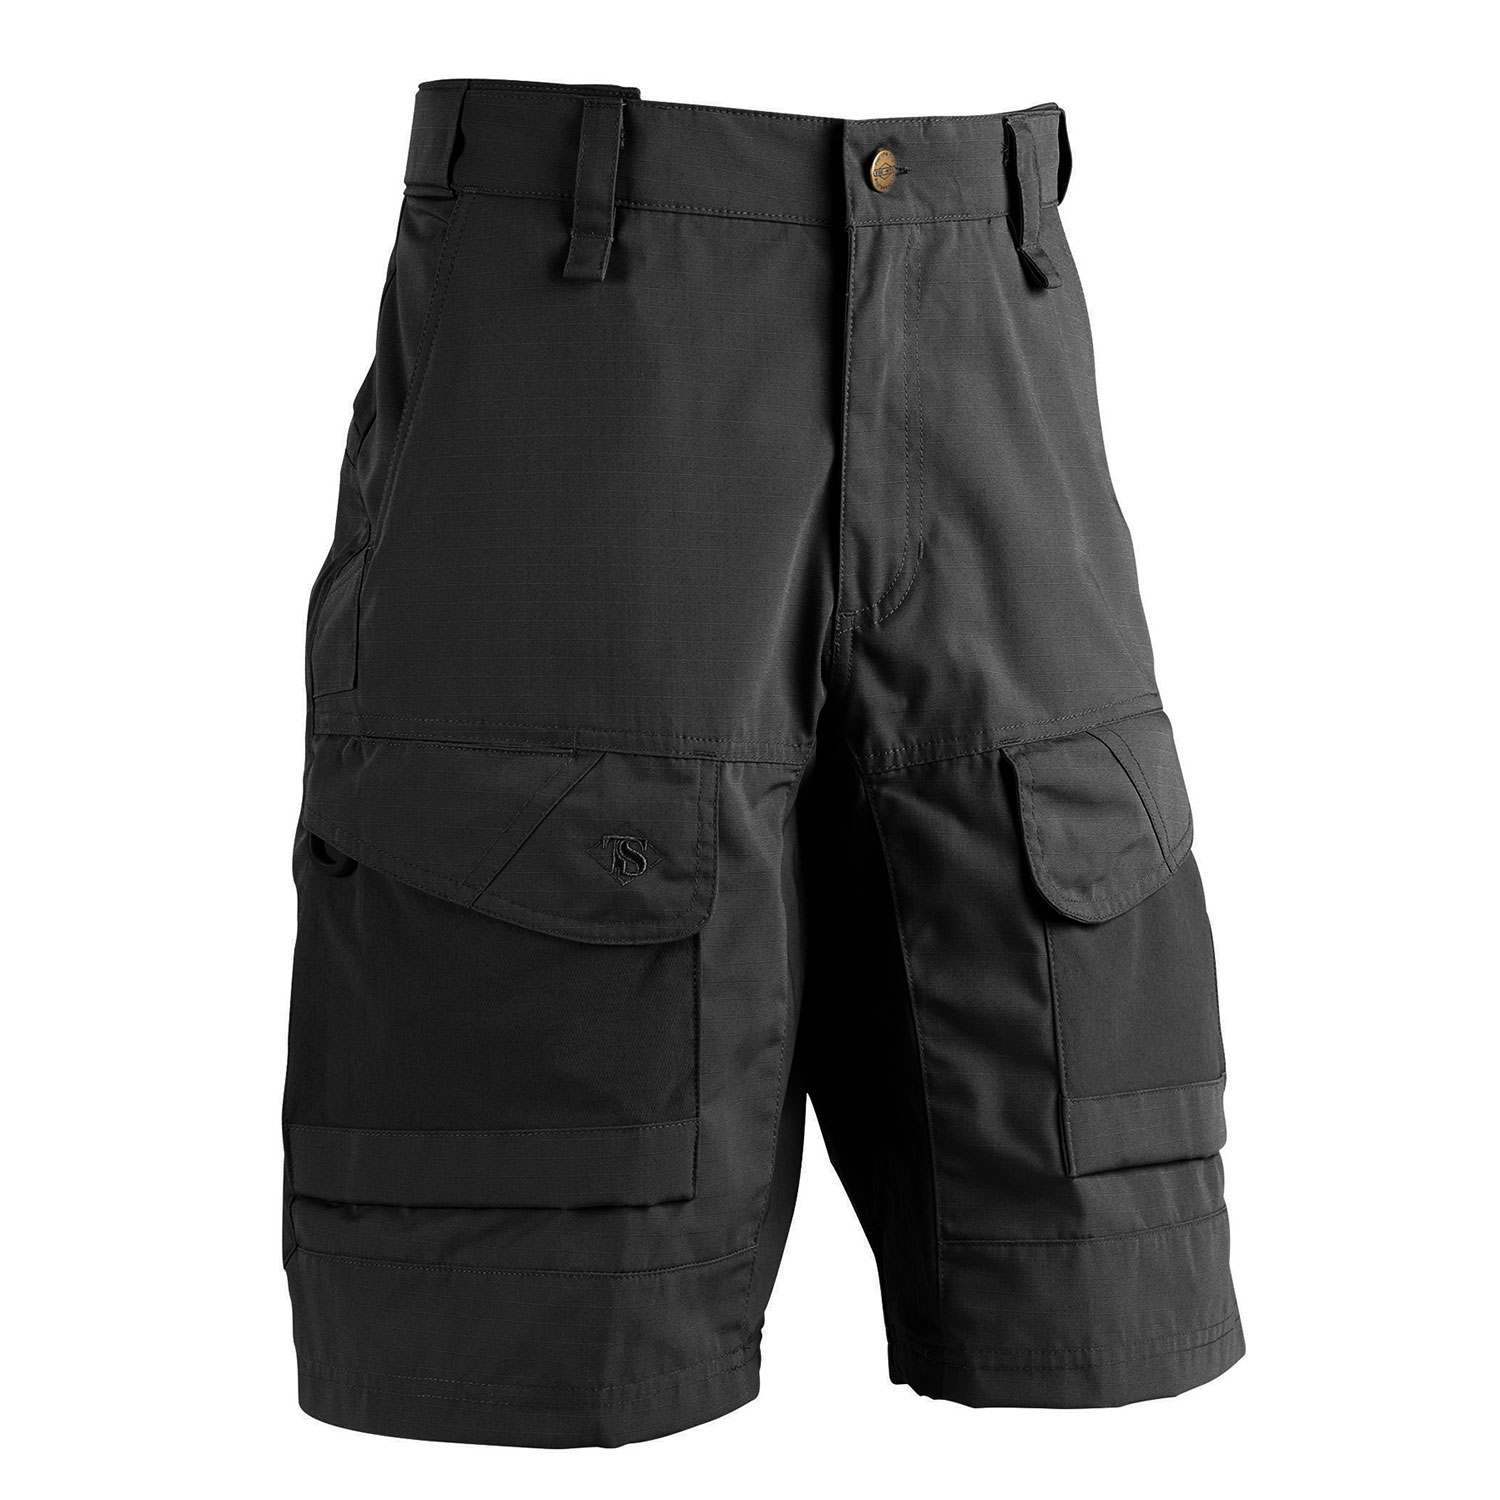 TRU-SPEC 24-7 Xpedition Shorts